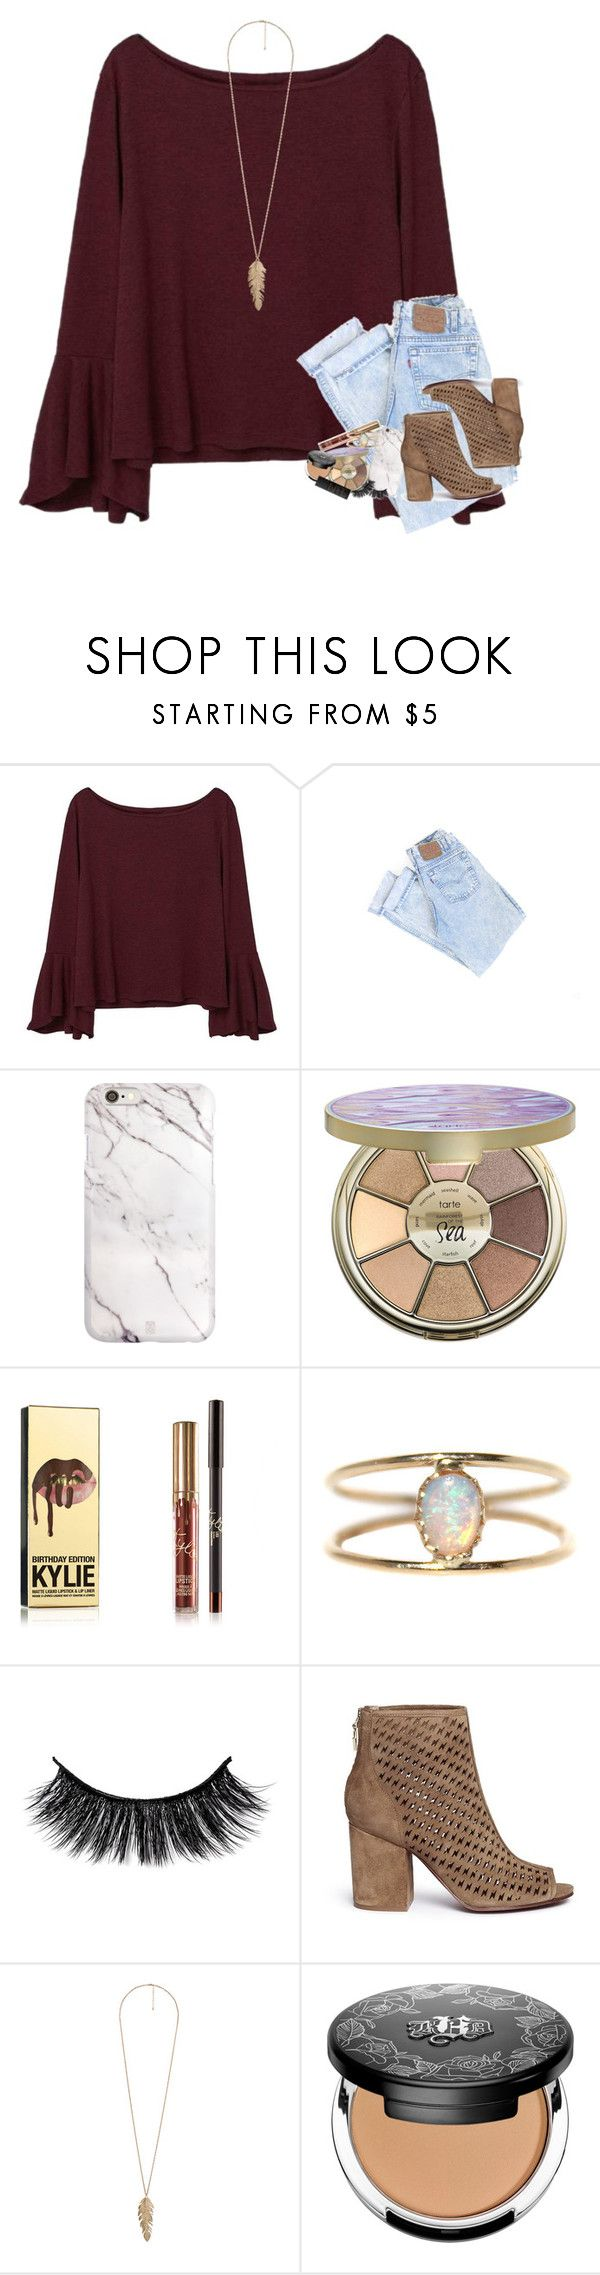 """""""i'm in love with the shape of you"""" by mehanahan ❤ liked on Polyvore featuring MANGO, tarte, LUMO, Ash, Forever 21, Kat Von D and NARS Cosmetics"""